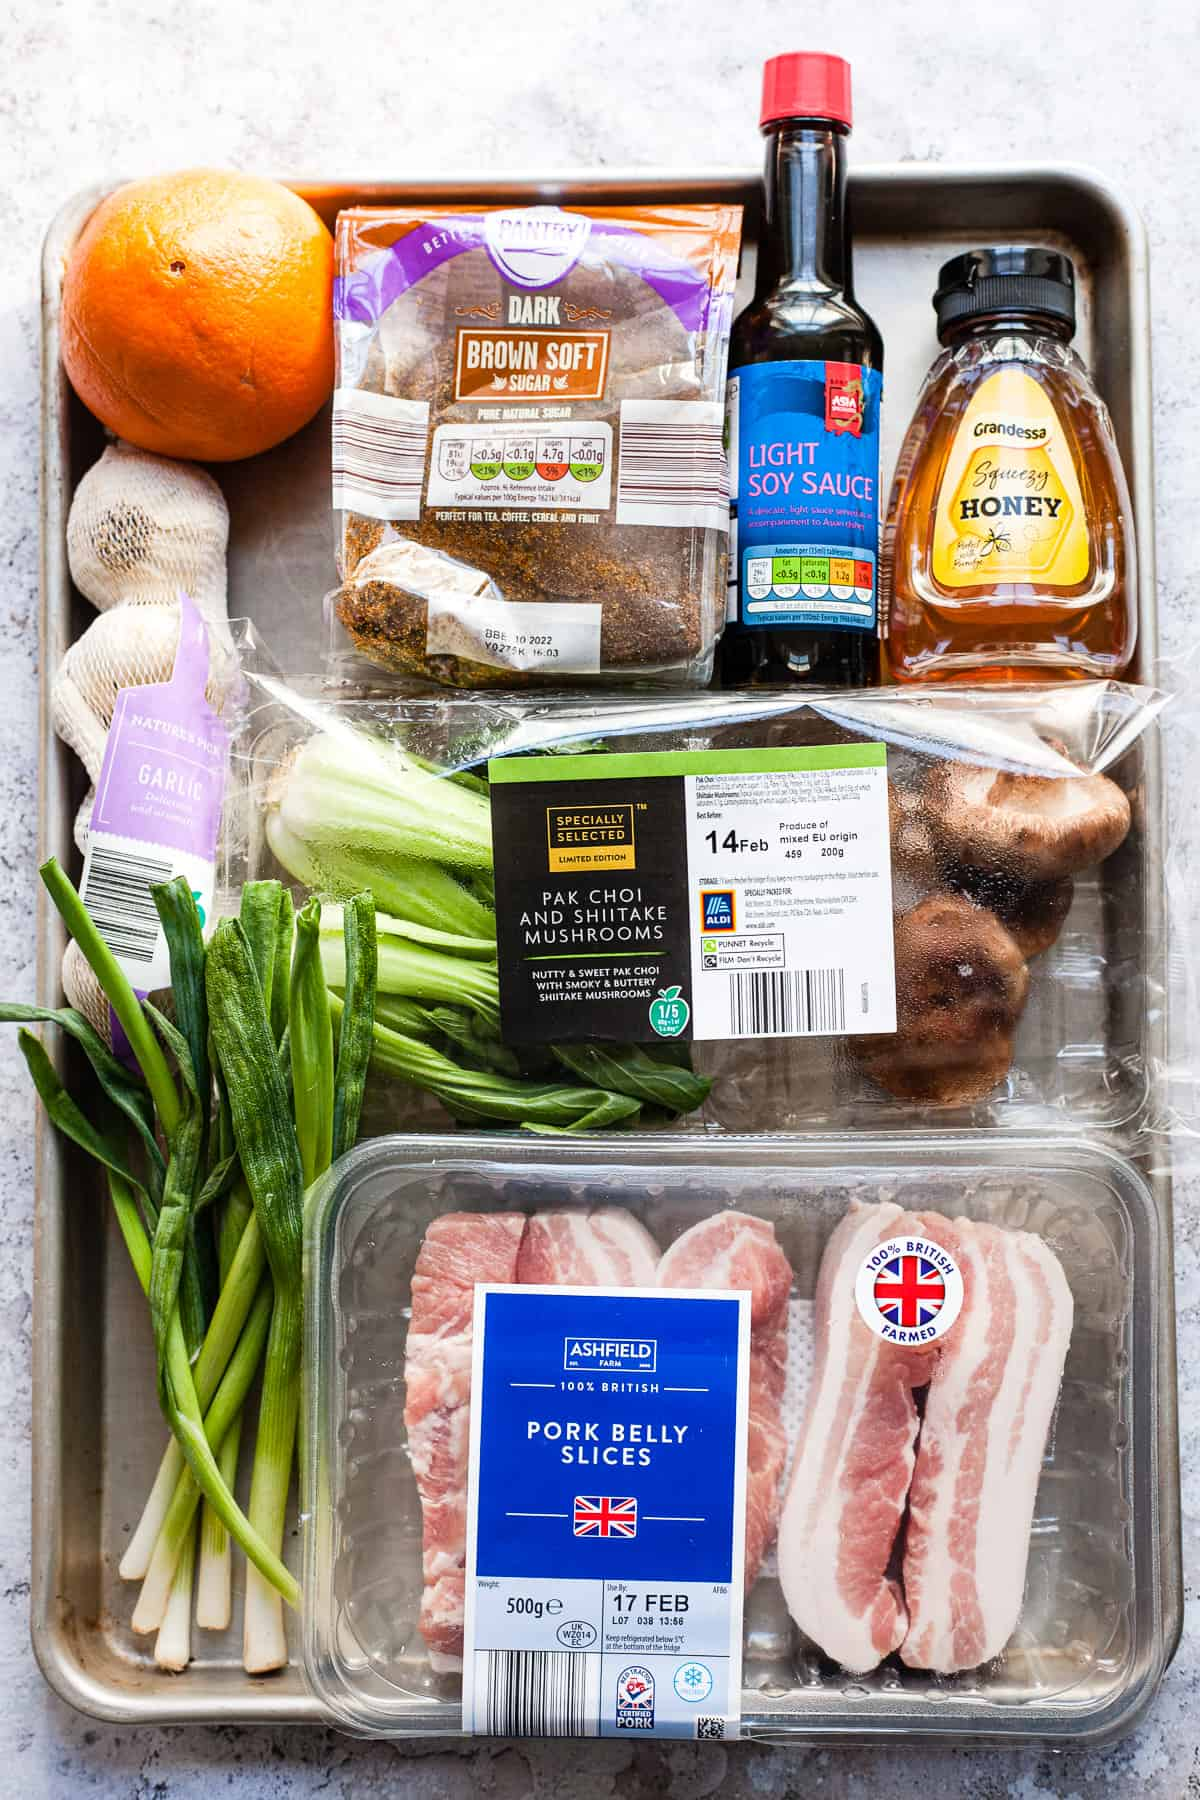 Aldi Ingredients for Chinese pork belly slices